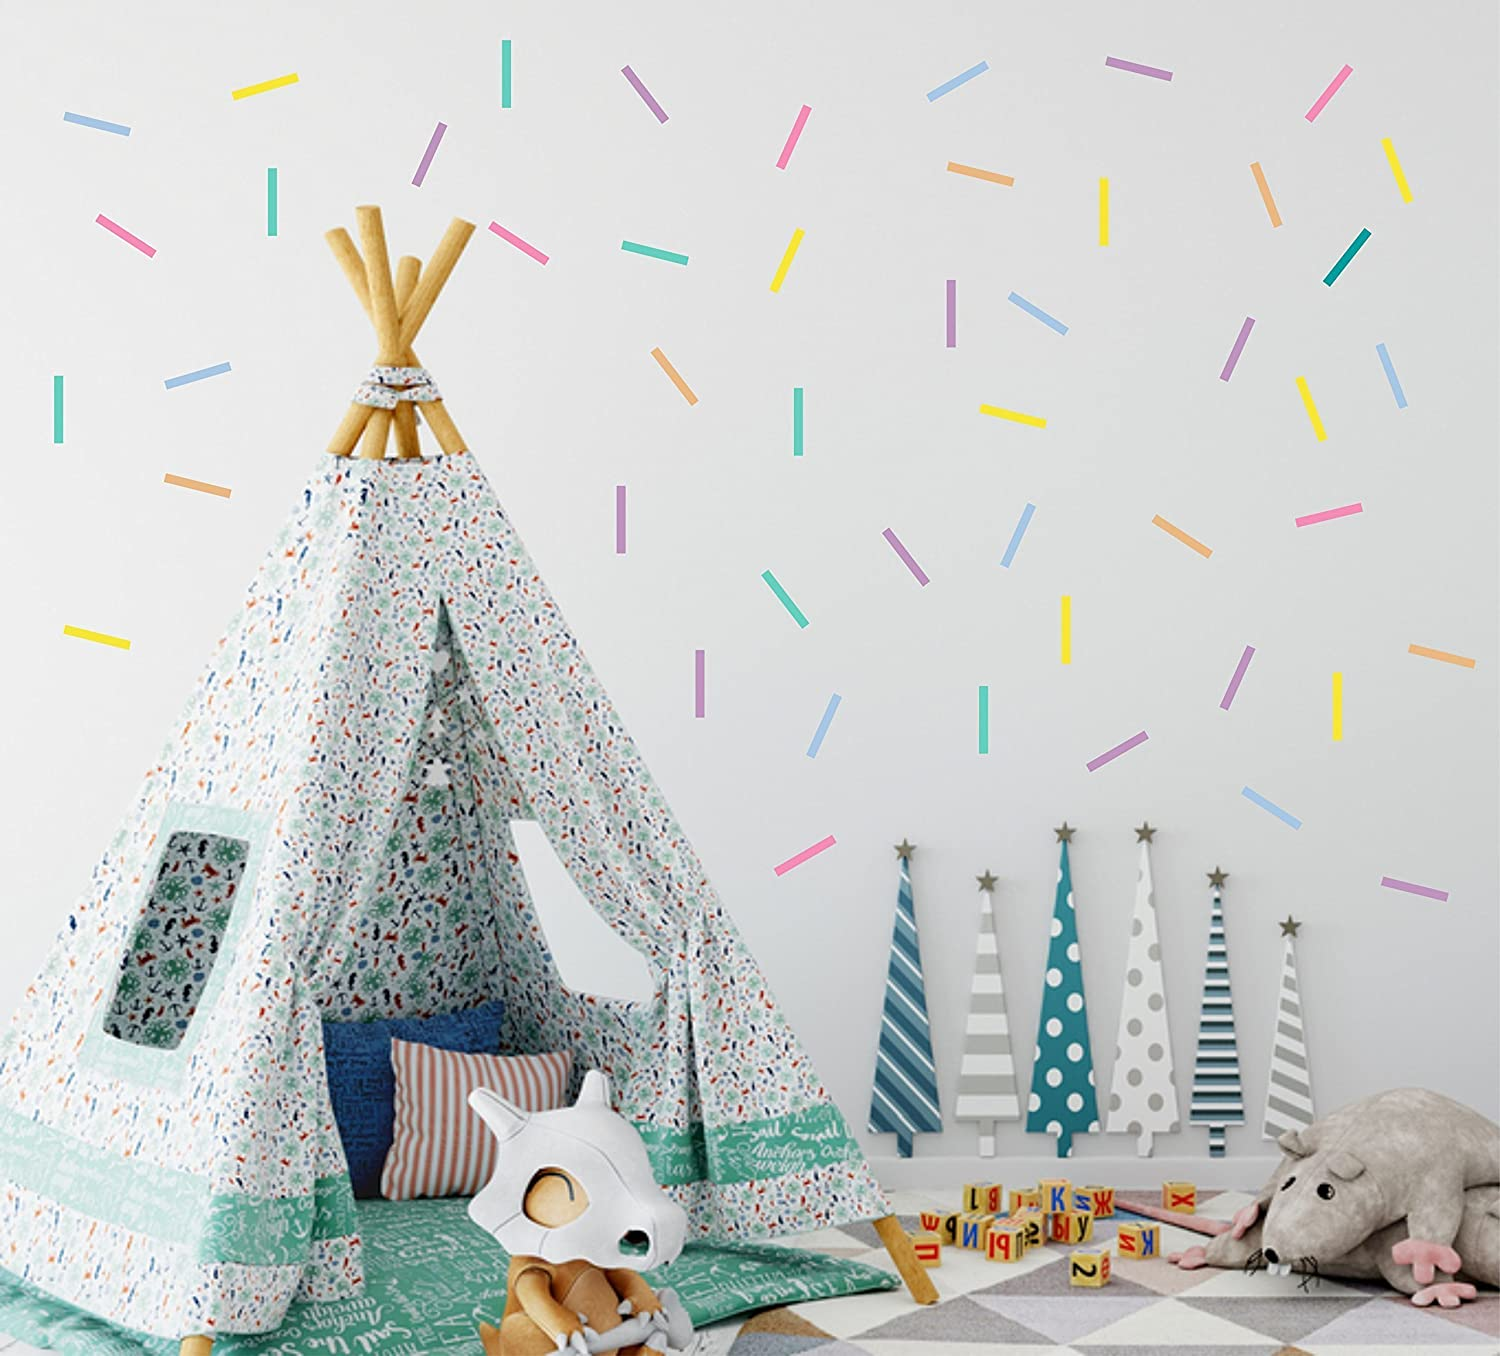 Pastel Confetti Wall Decals (0.4 x 3